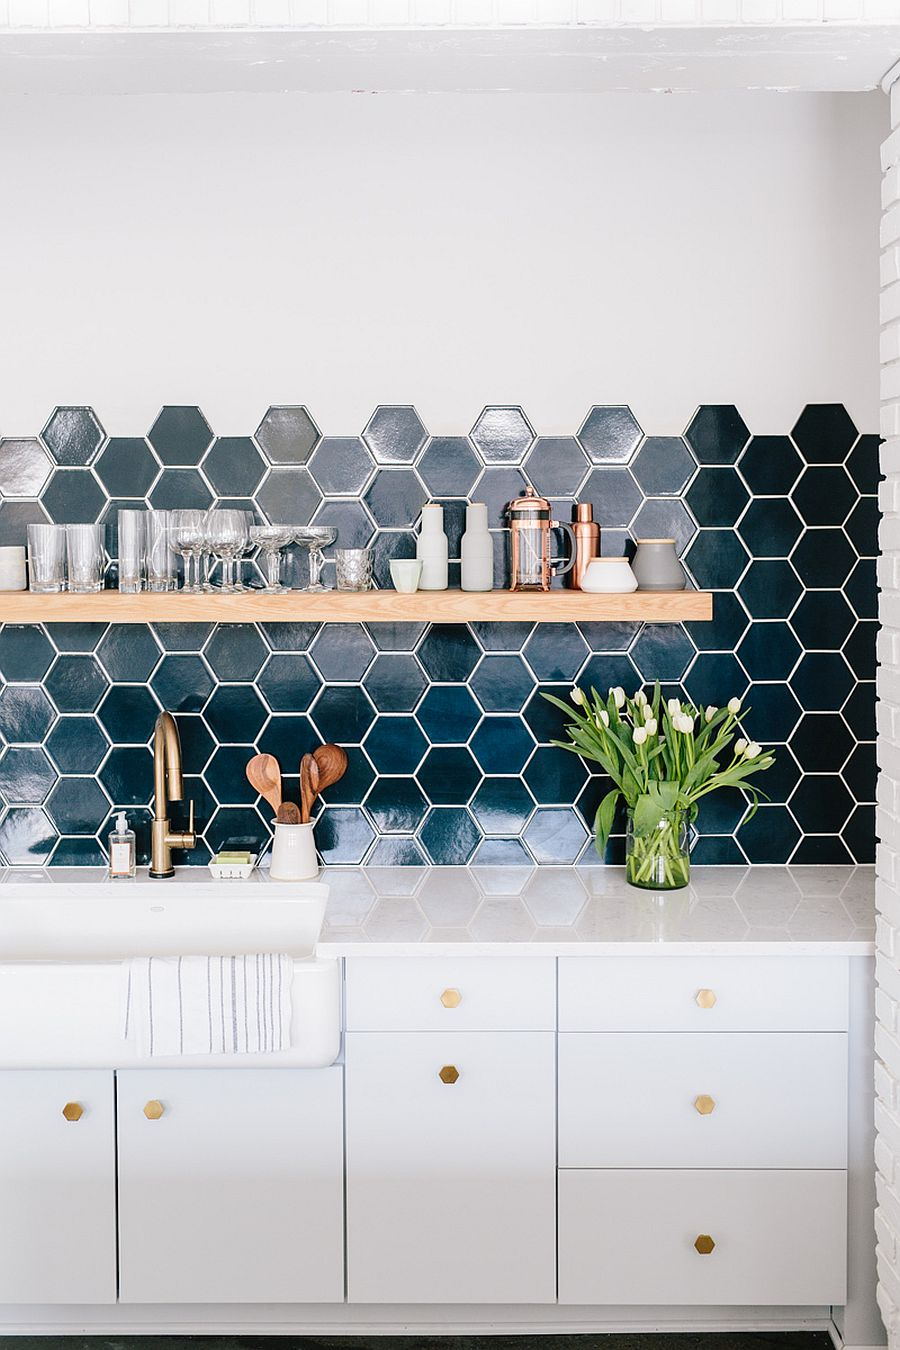 10 Hexagonal Tiles Ideas For Kitchen Backsplash Floor And More